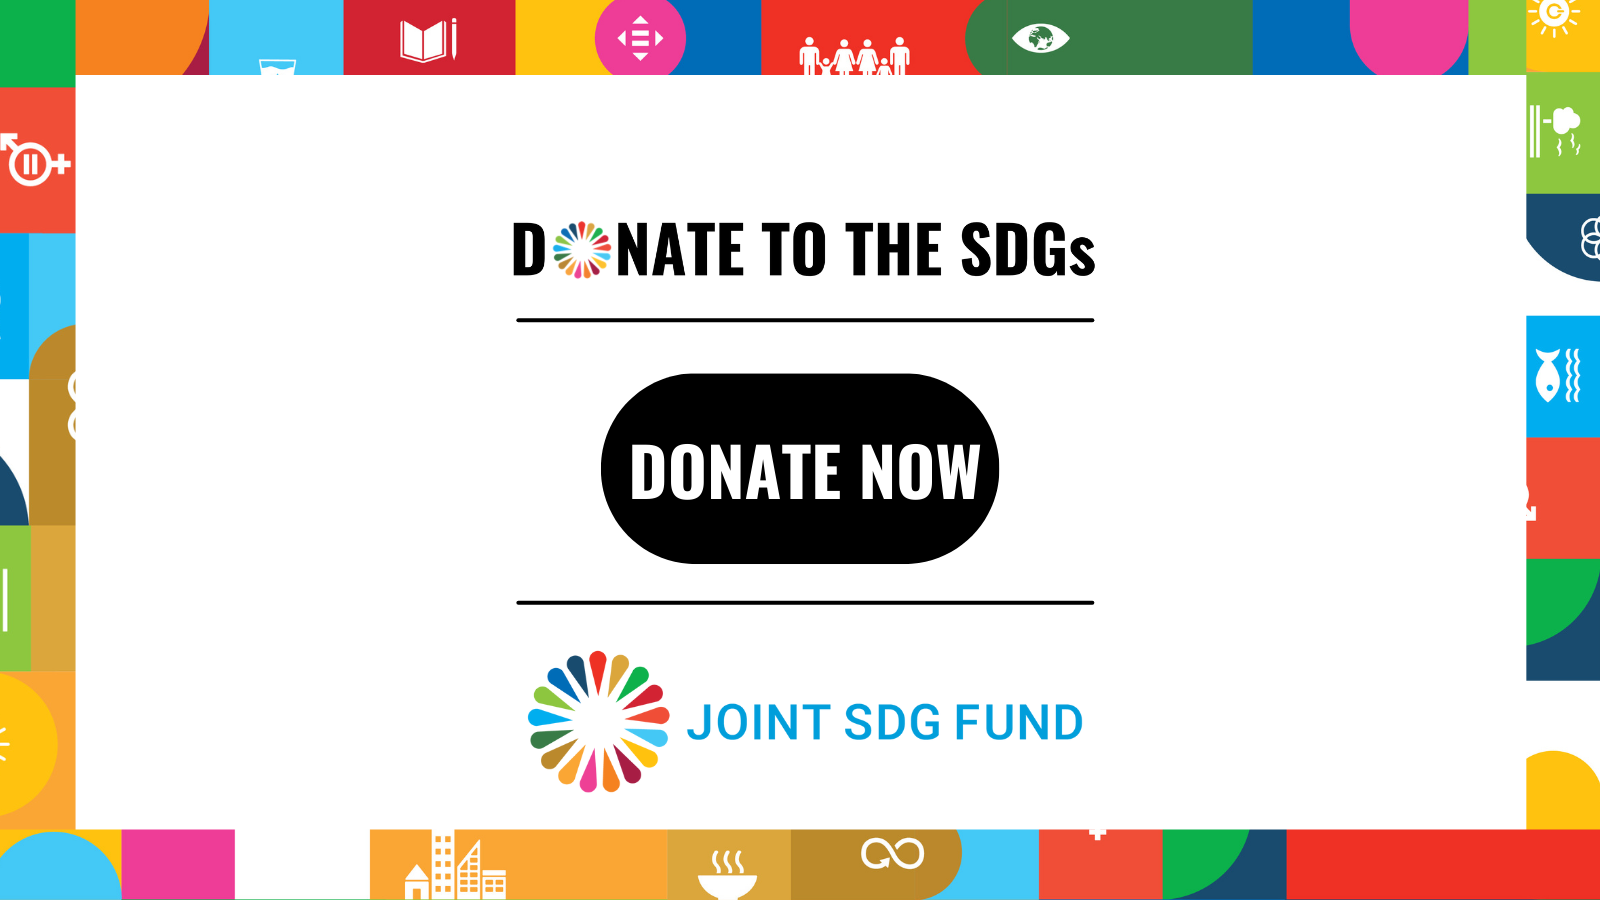 Donate to the Sustainable Development Goals